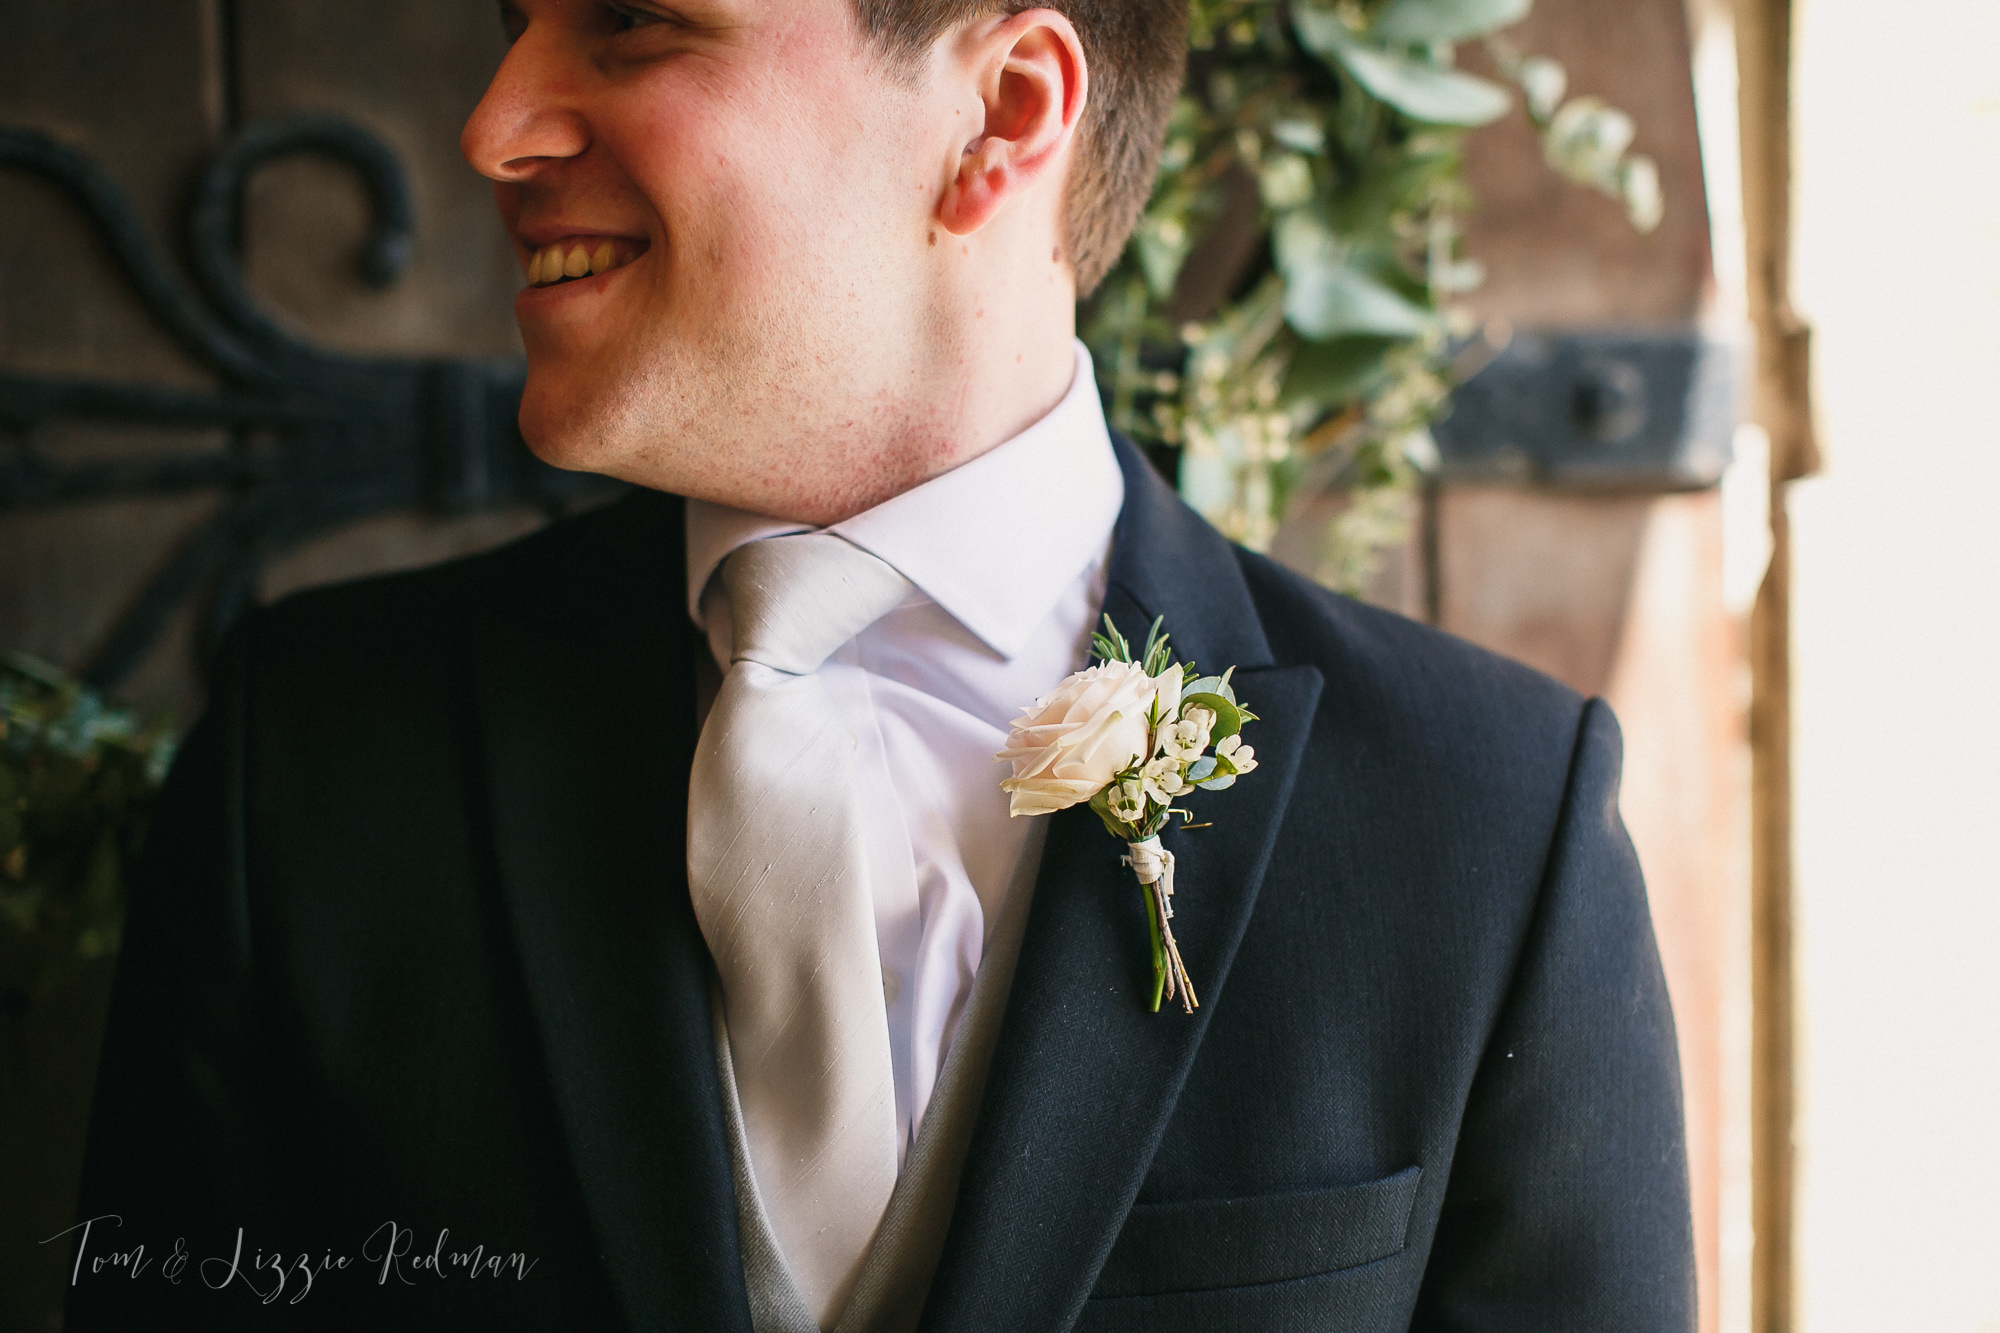 Dorset wedding photographers Tom & Lizzie Redman 012.jpg